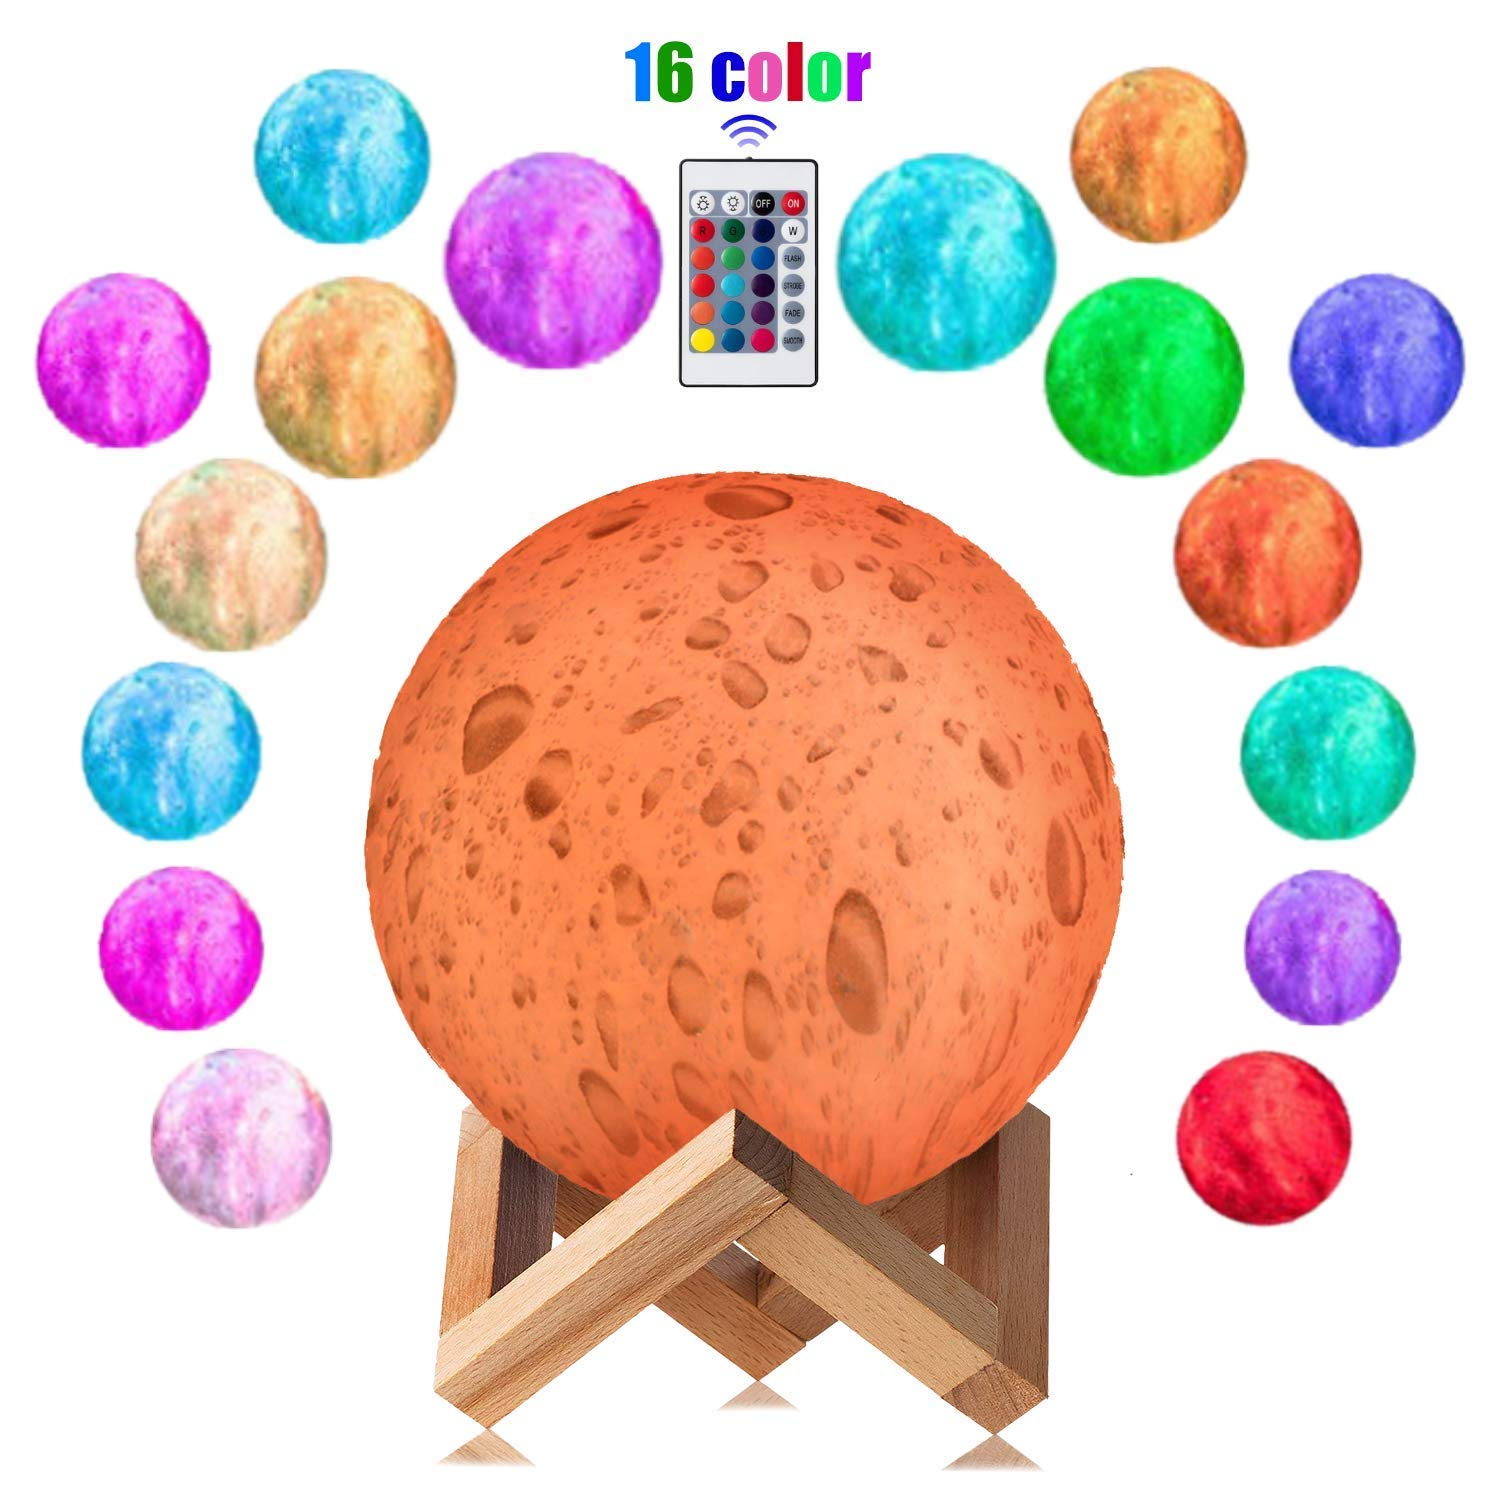 3D Moon Lamp 16 Colors LED 3D Print Moon Light with Stand Remote Touch Control and USB Rechargeable